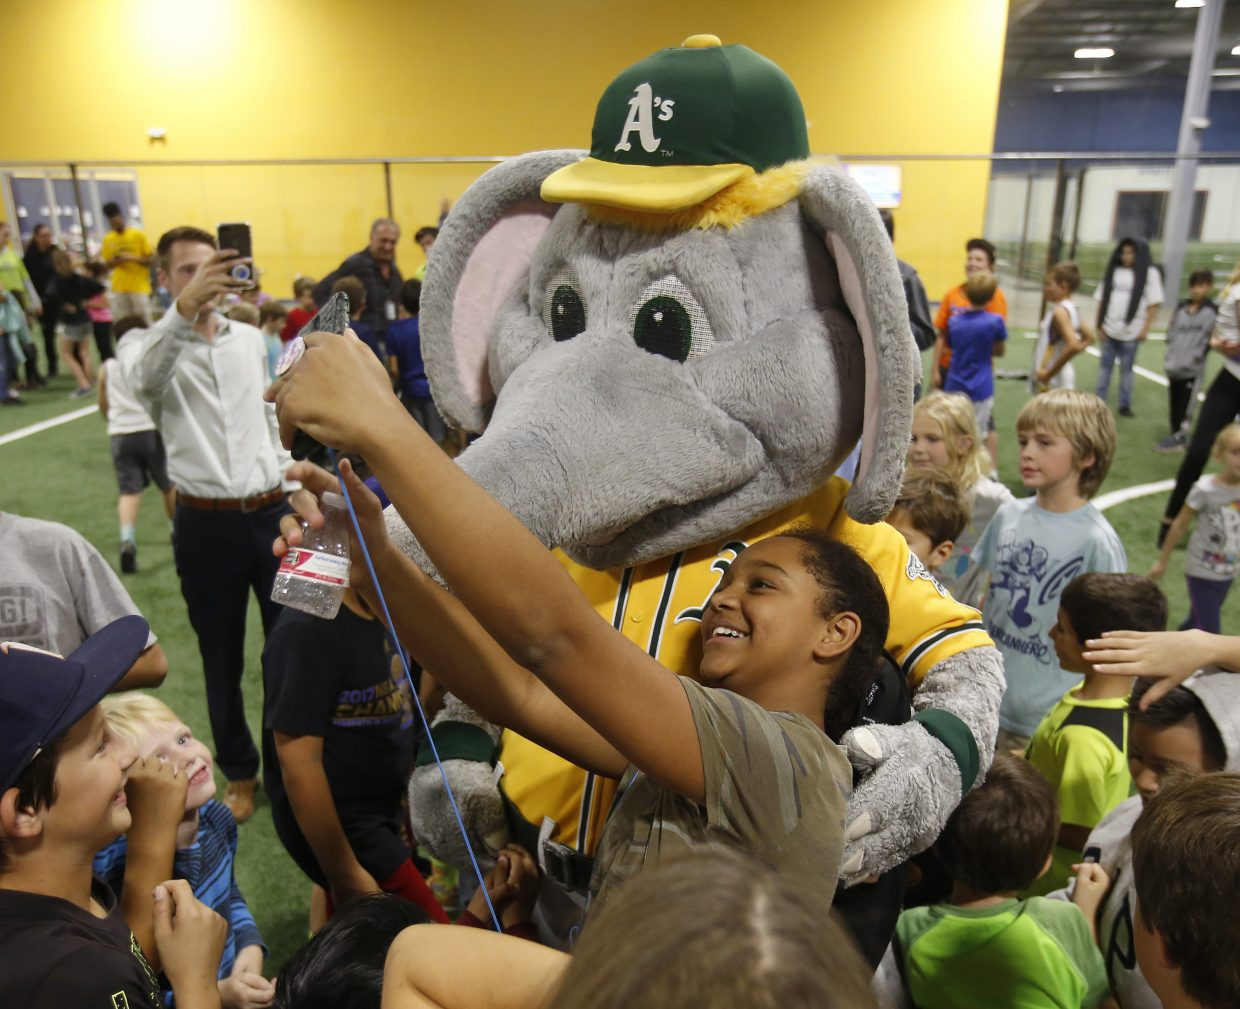 Deja Jones, 12, takes a selfie with Stomper, the mascot of the Oakland A's Major League Baseball team at the Epicenter sports complex, Tuesday, Oct. 17, 2017, in Santa Rosa, Calif. Stomper and A's catcher Bruce Maxwell visited the center and brought items for the kids at the center that has opened it's doors for the area children affected by the recent wildfires.